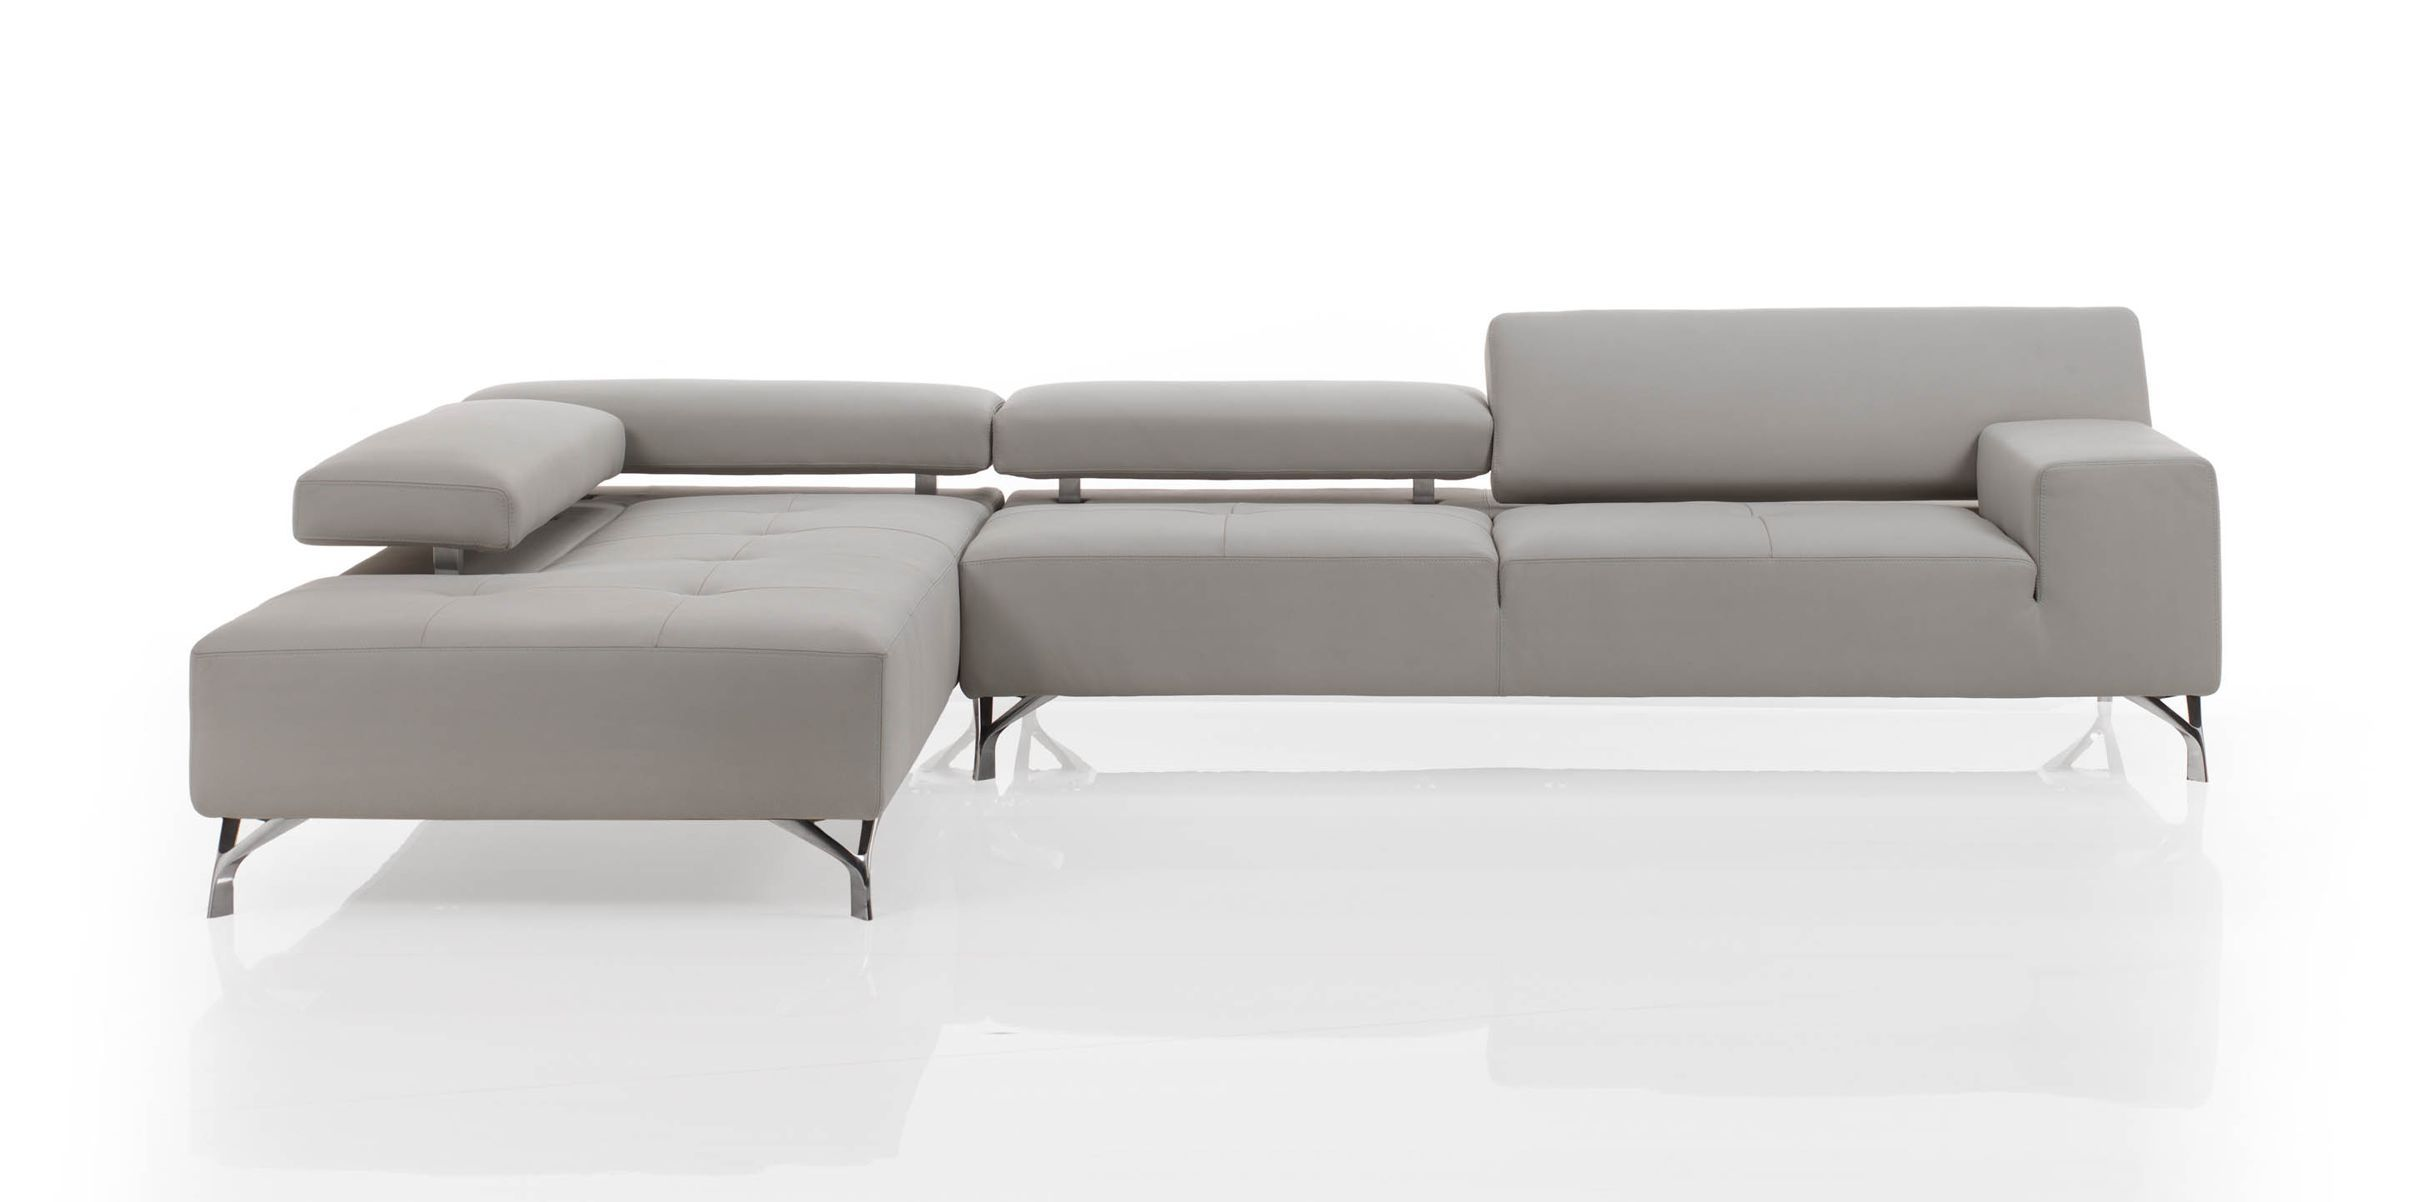 Miami Modern Luxury Sectional Sofa By